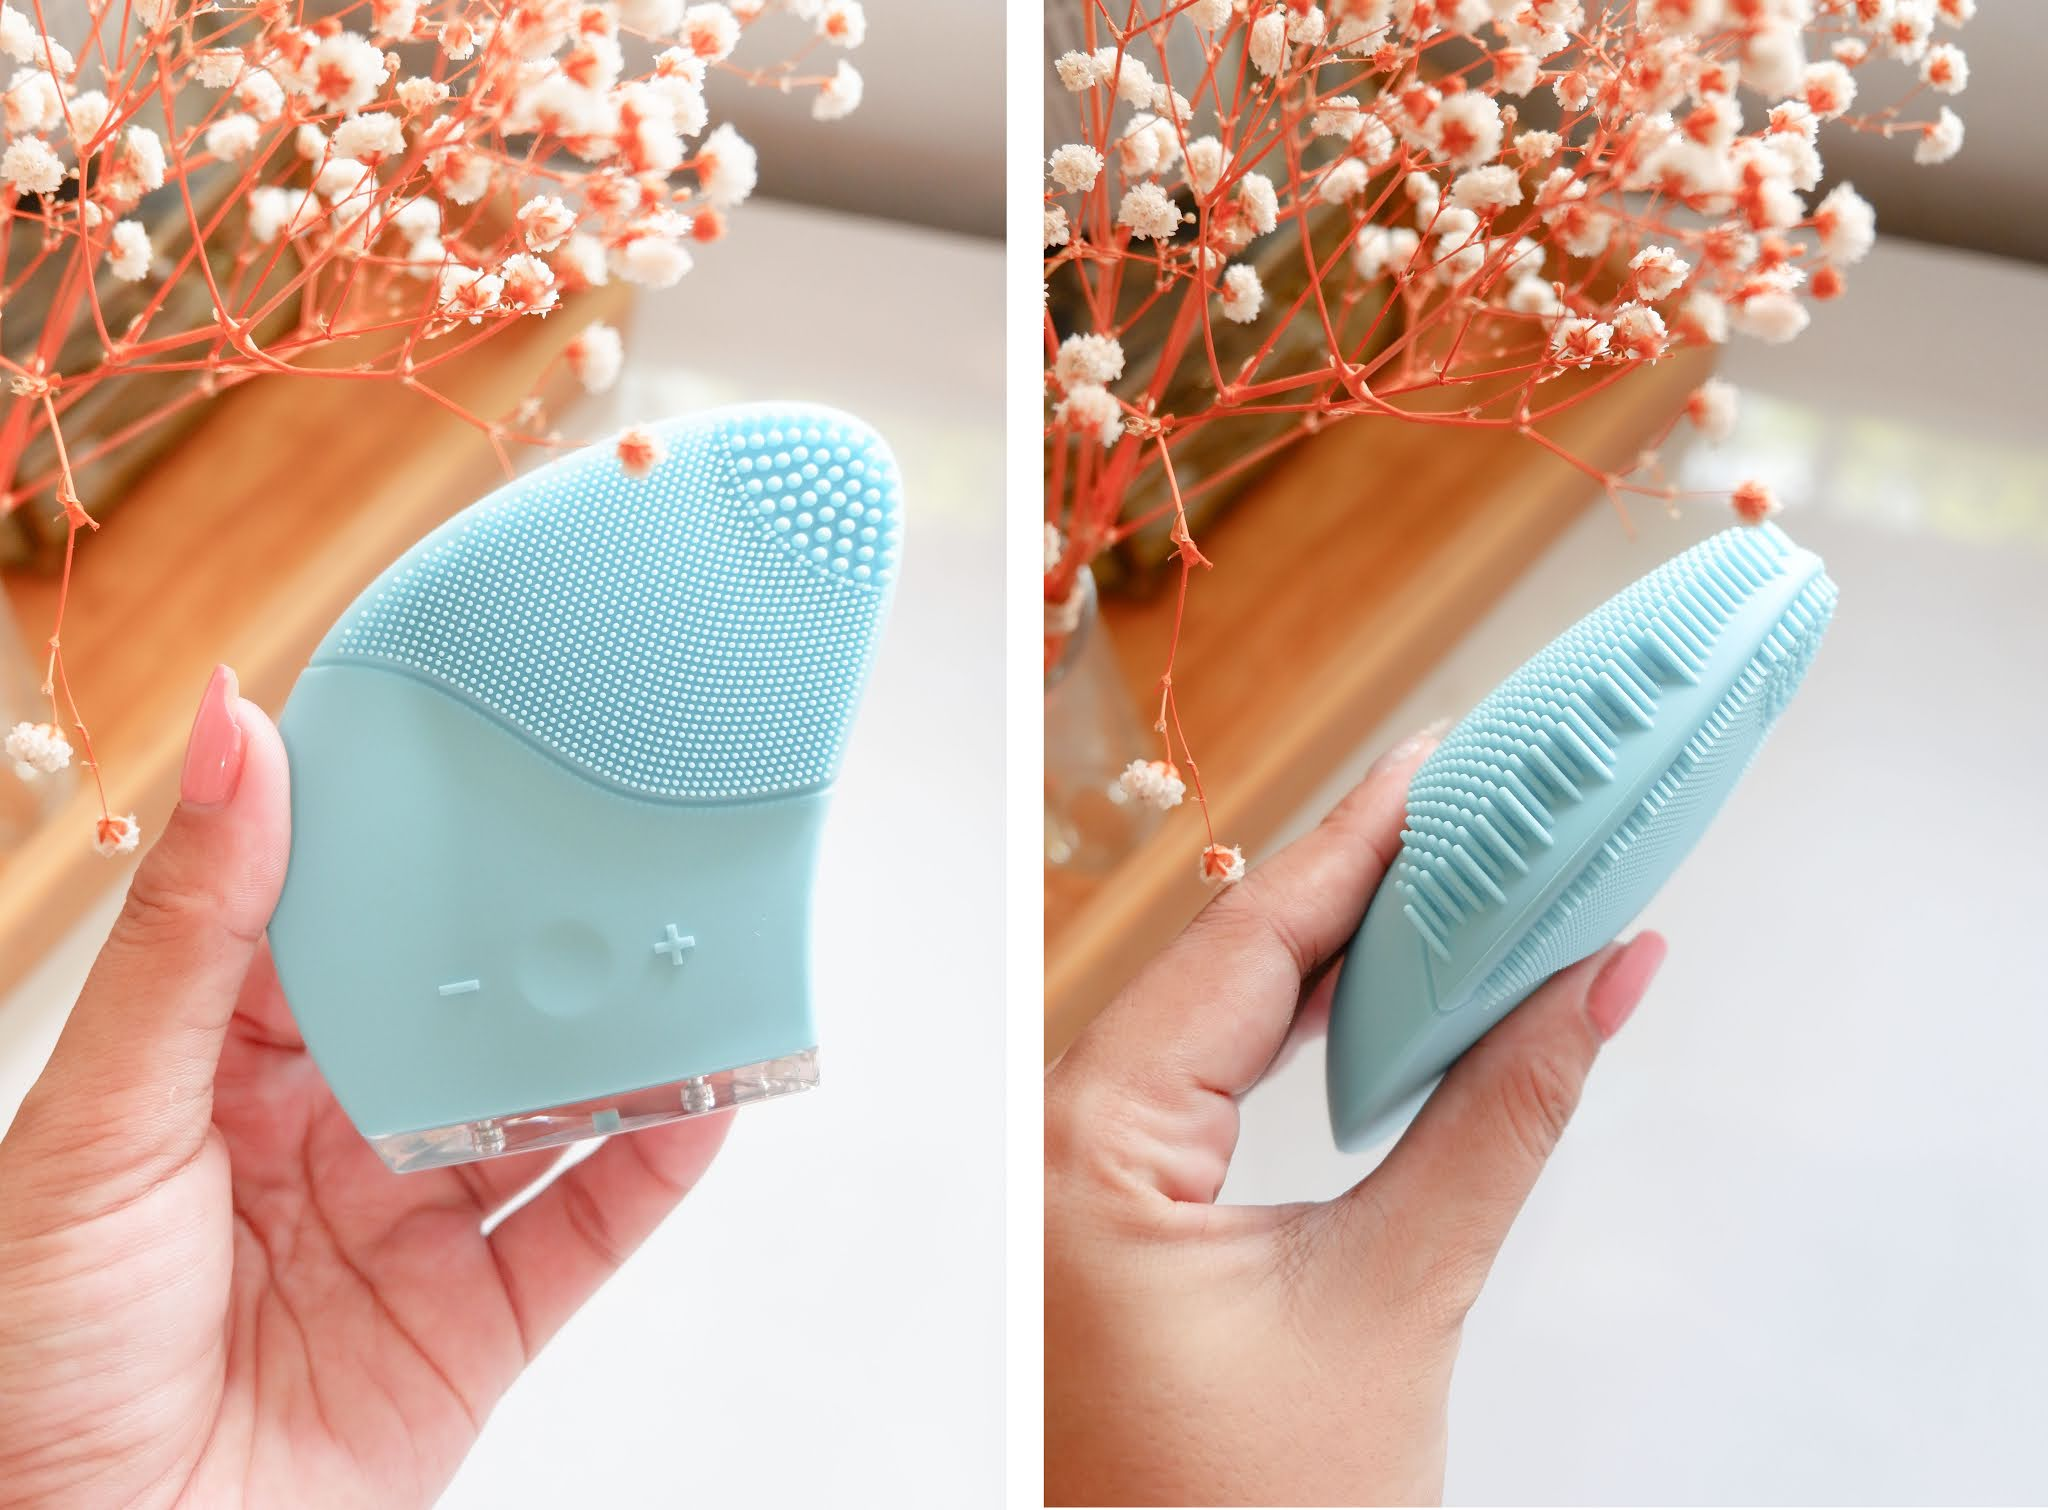 REVIEW OF ELUNARA BEAUTY AMBIENT JUPITER ULTRASONIC SILICONE FACIAL BRUSH